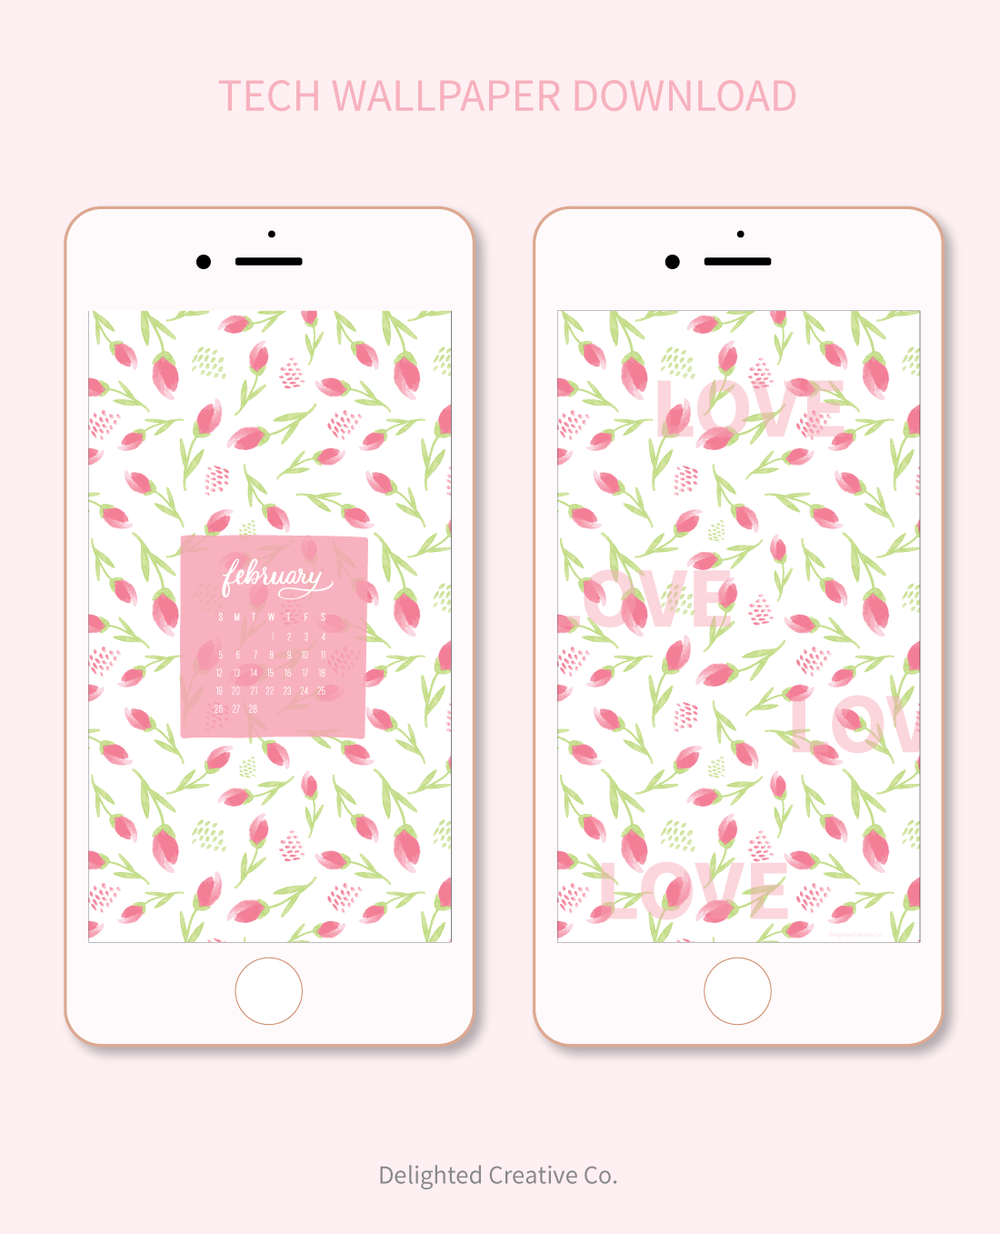 Free Tech Wallpaper for Valentines Month by Amanda Gomes • Delighted Creative Co.